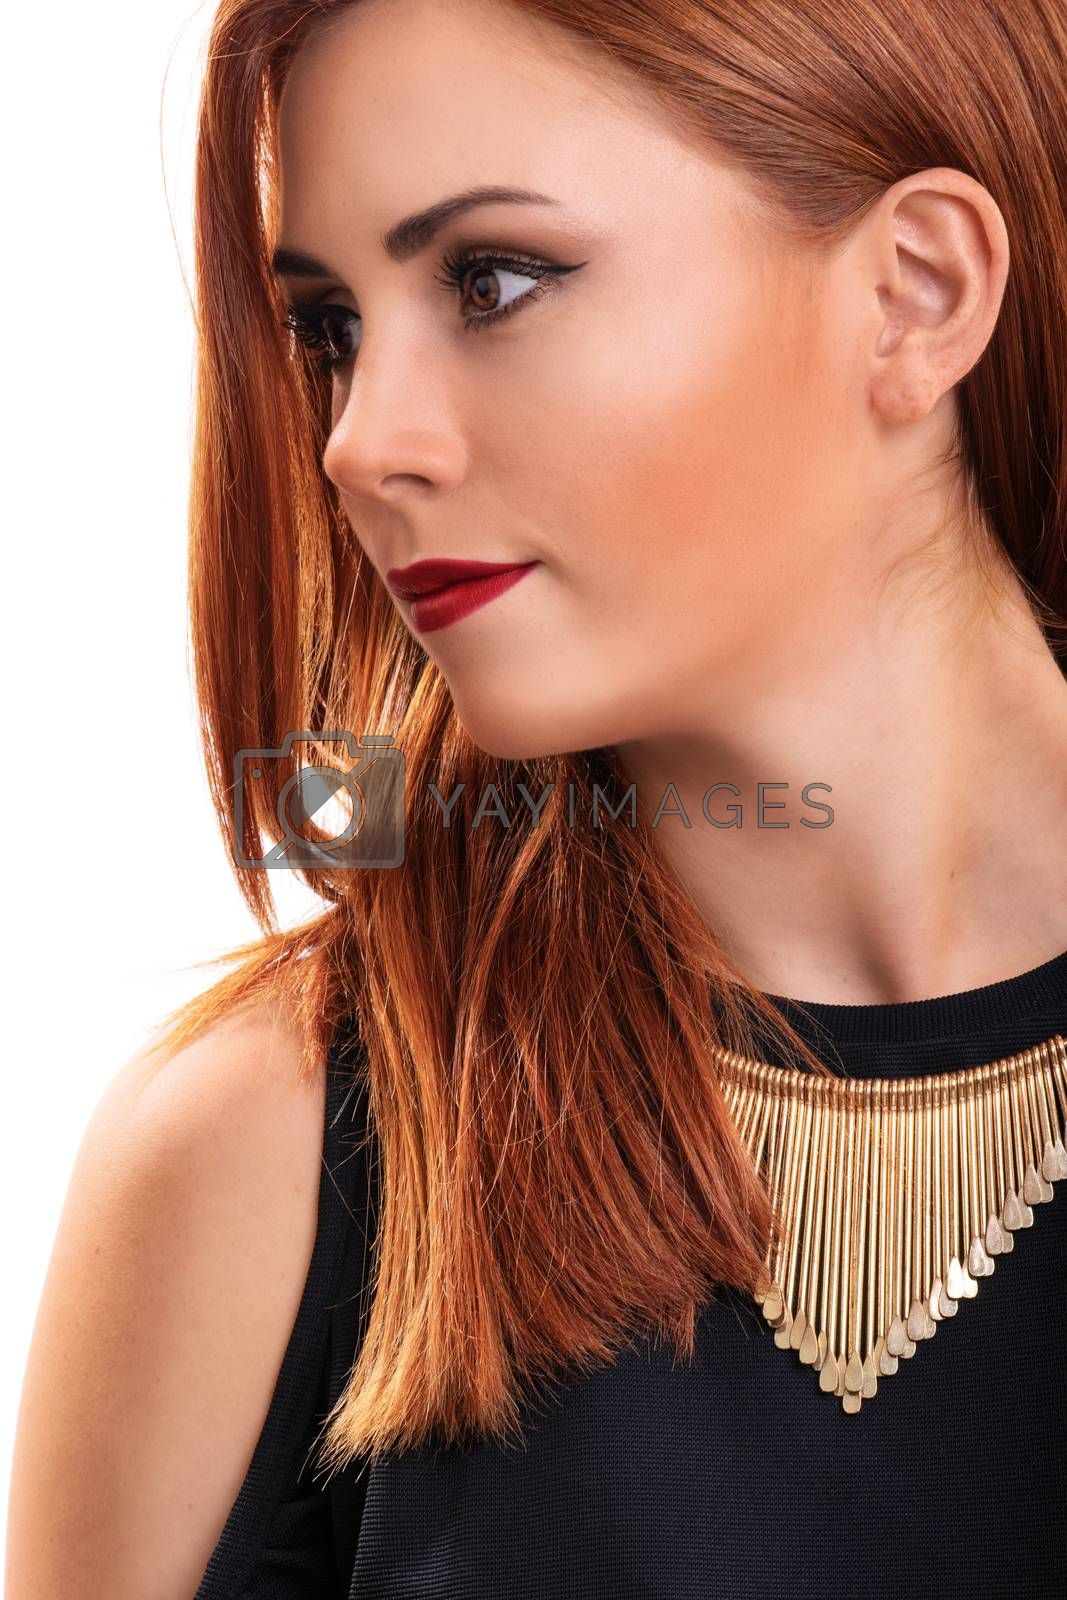 Beautiful redheaded young woman with stylish necklace by Mendelex